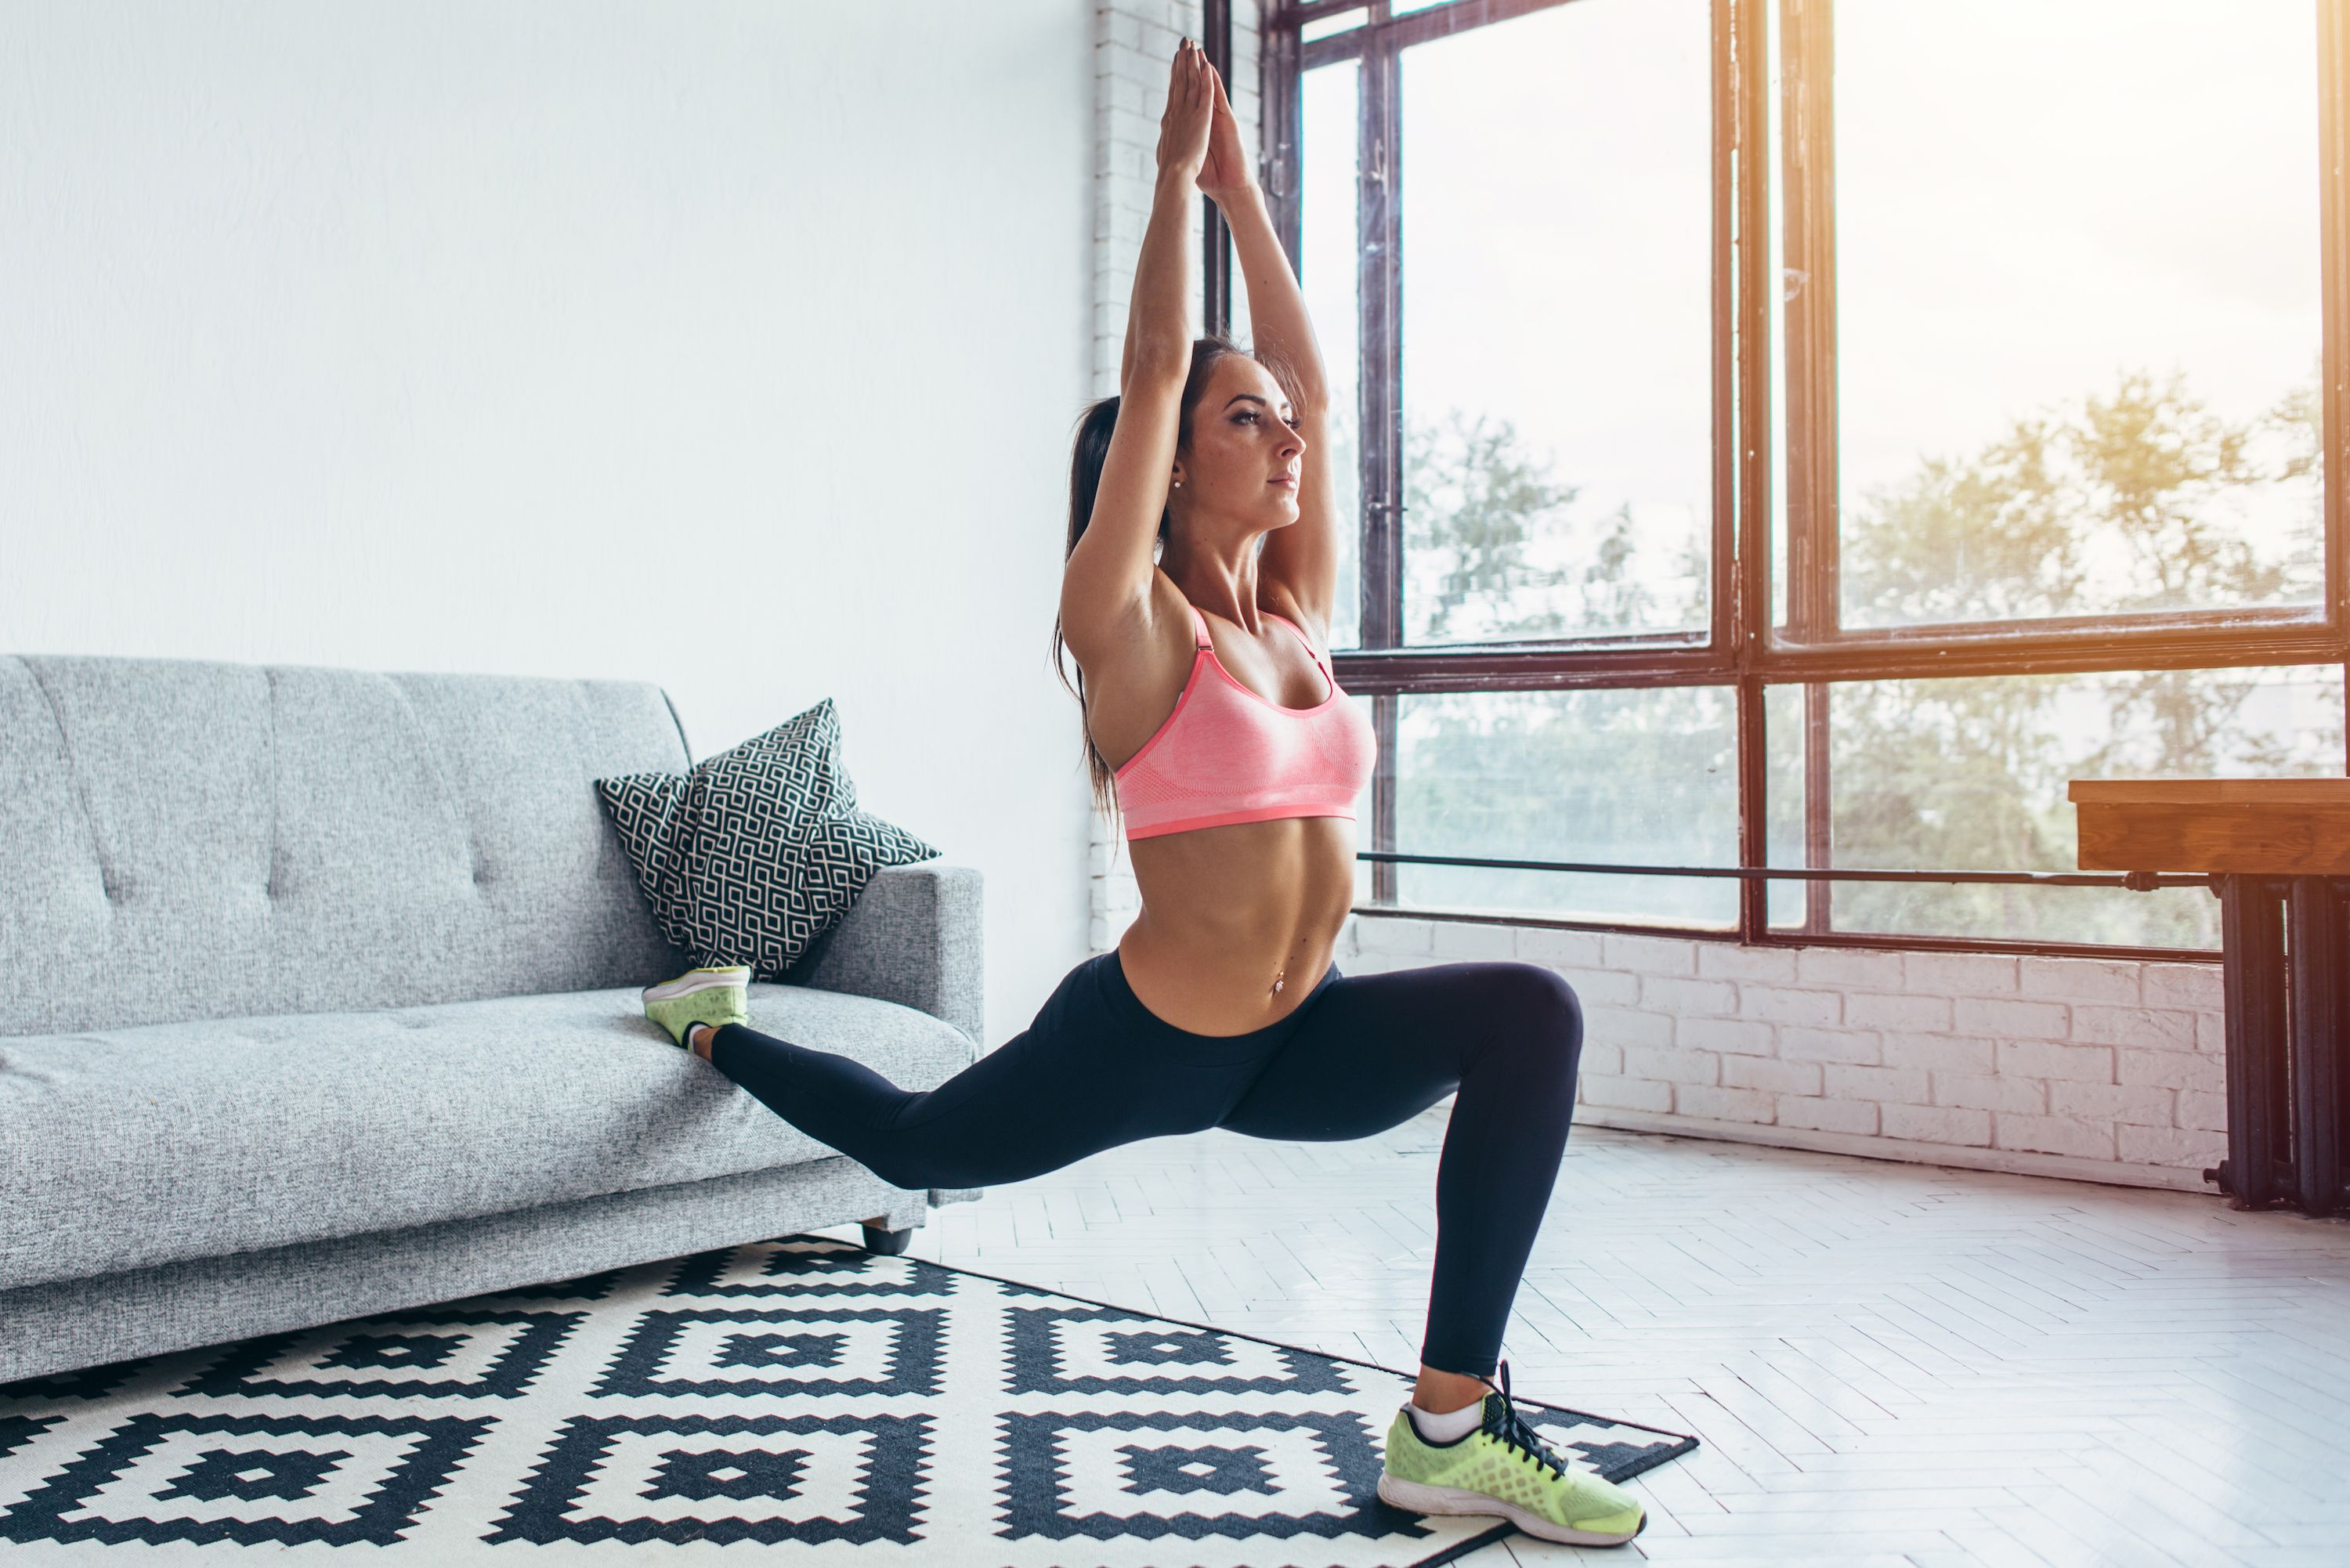 10 Best at Home Workout Plans for Women